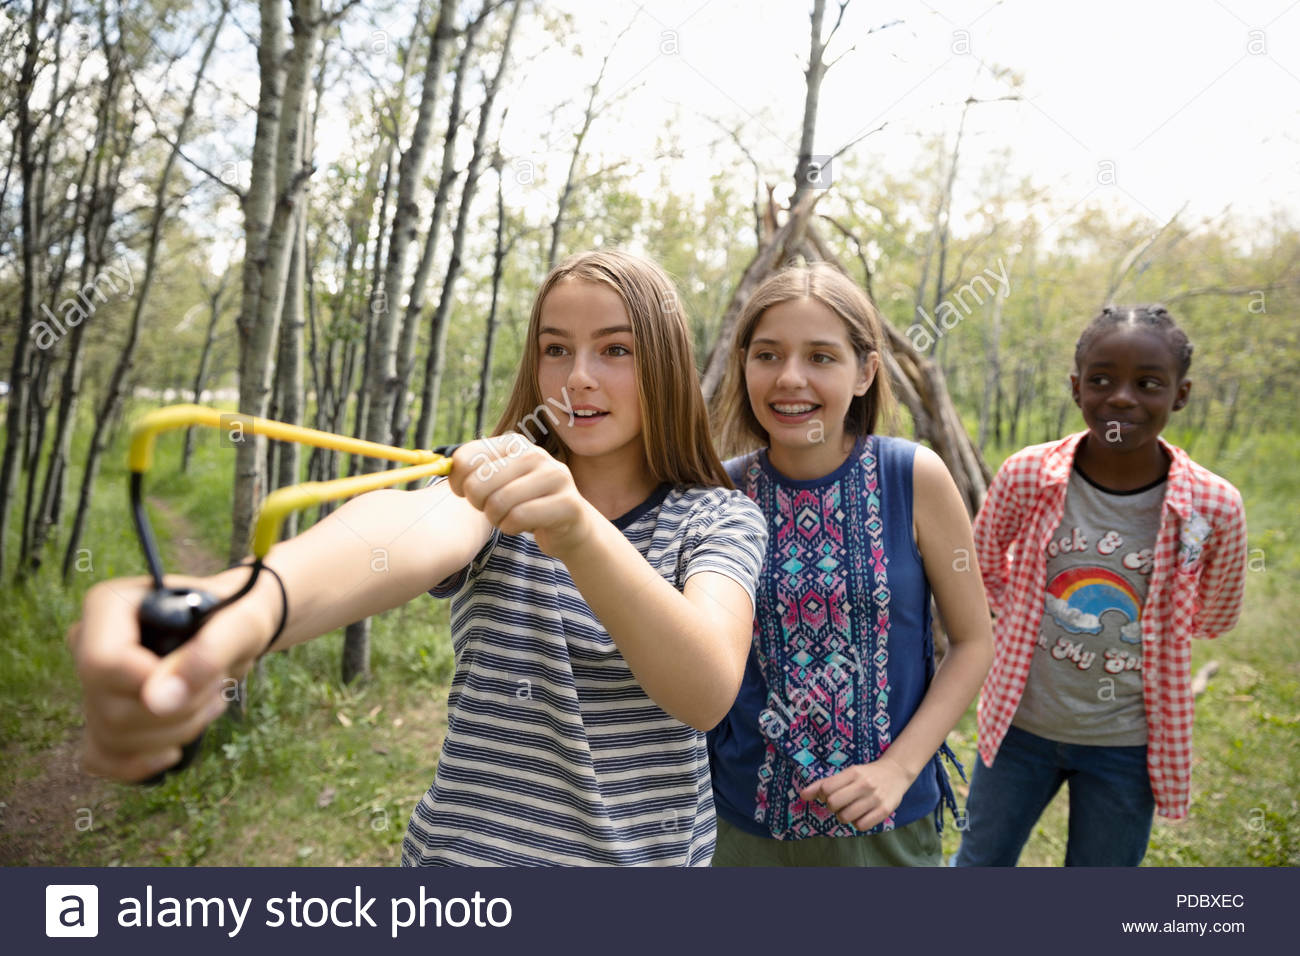 Playful tween girl friends playing with slingshot in woods Stock Photo